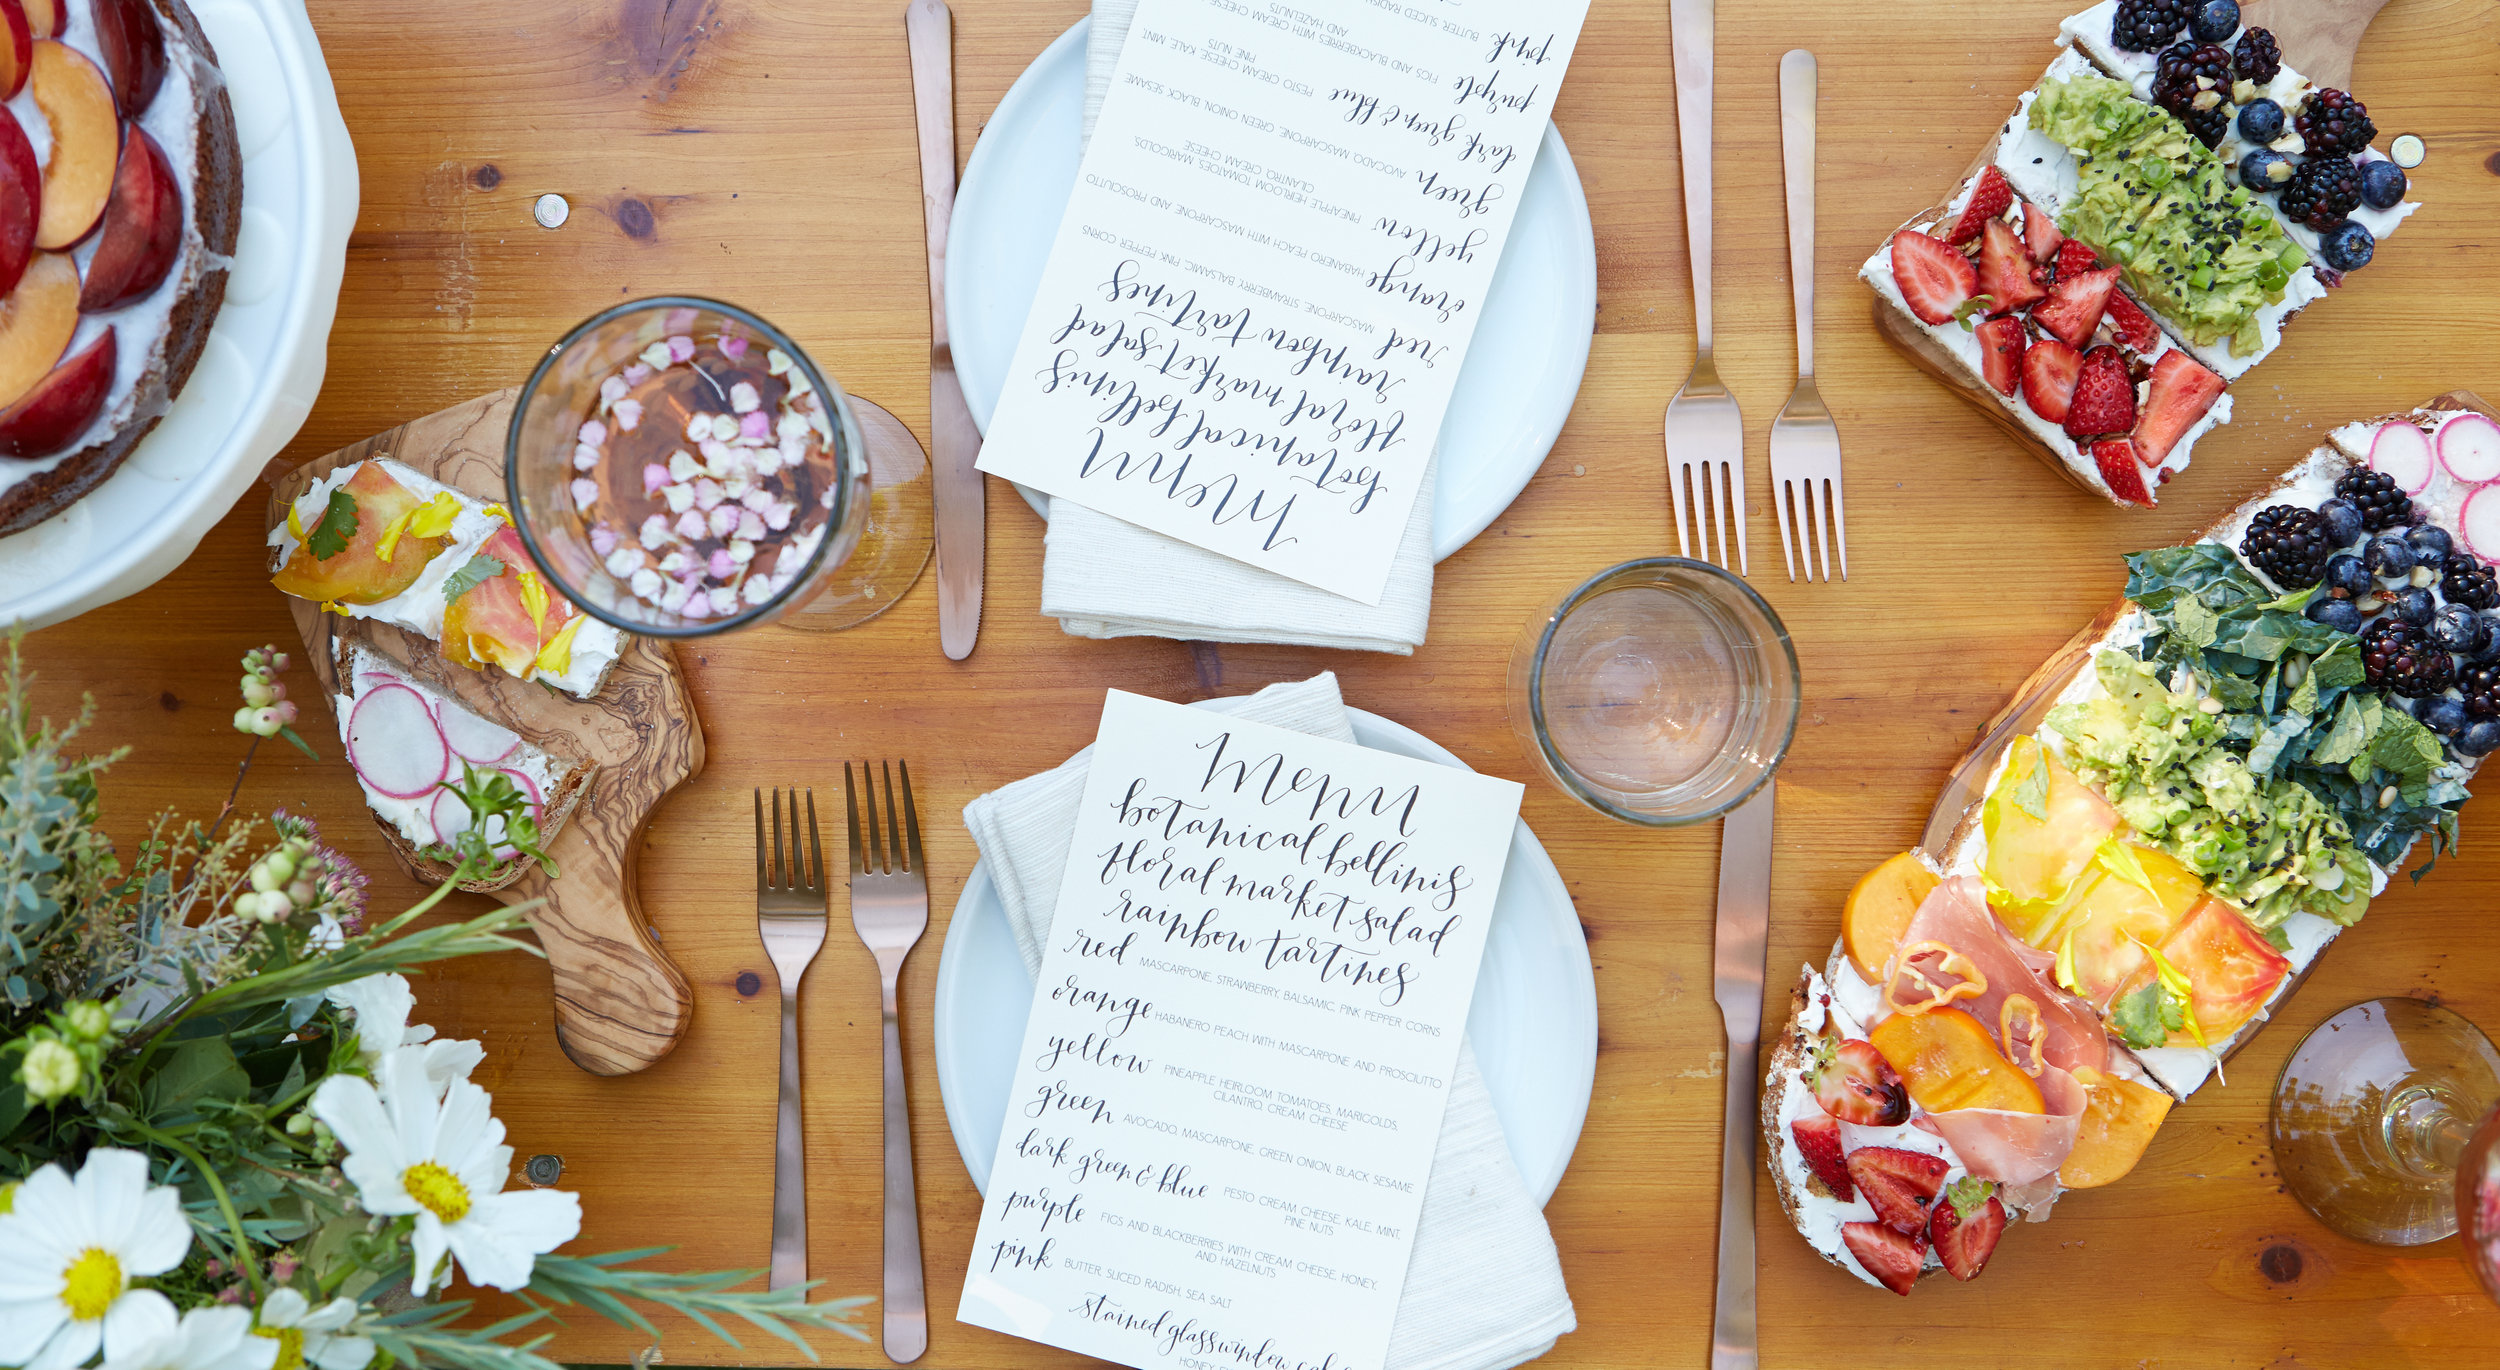 Party Planning: An Afternoon Luncheon With Jenni Kayne